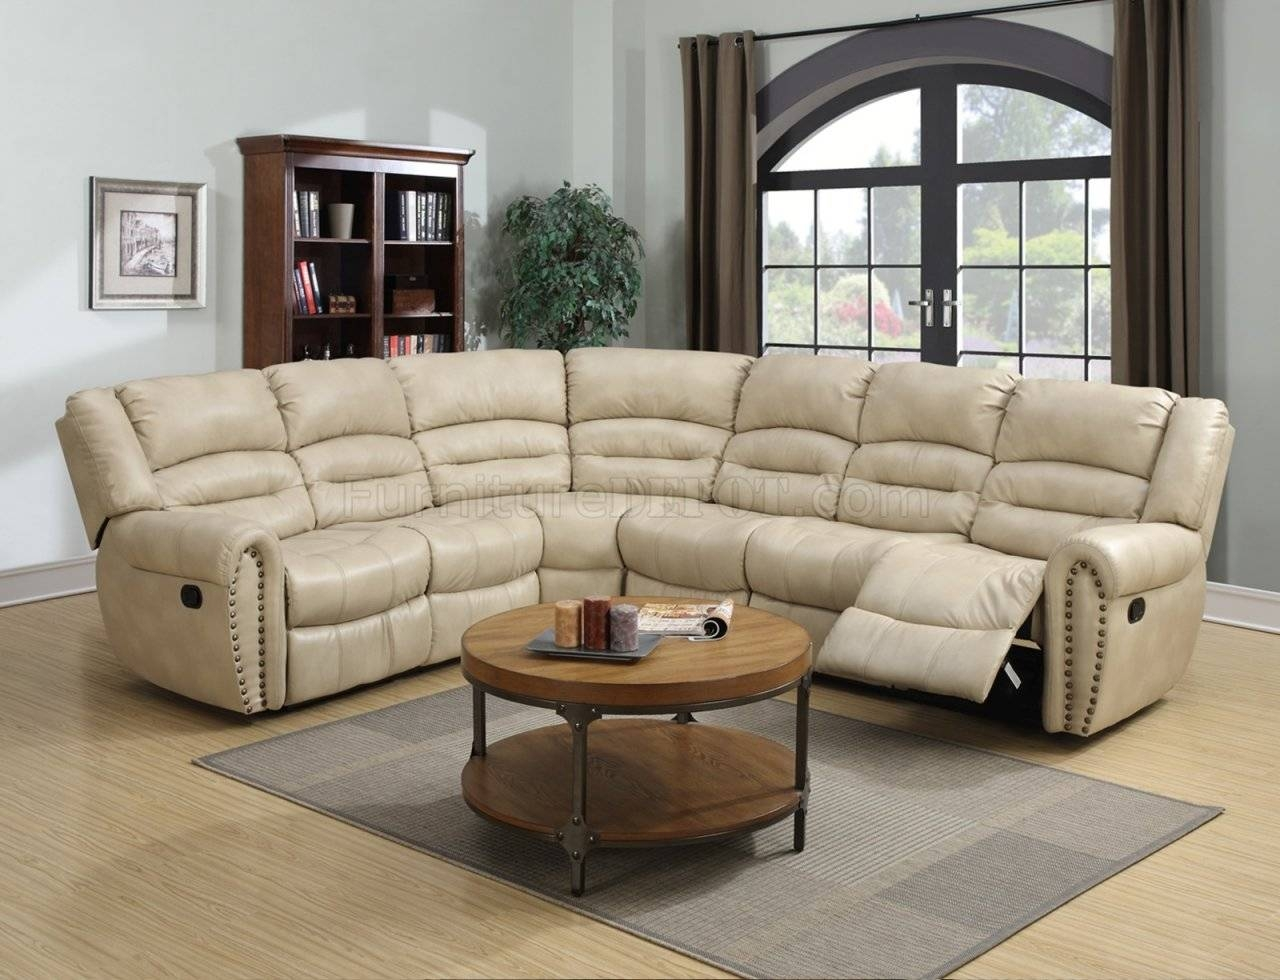 G687 Motion Sectional Sofa In Beige Bonded Leatherglory for Leather Motion Sectional Sofa (Image 14 of 25)